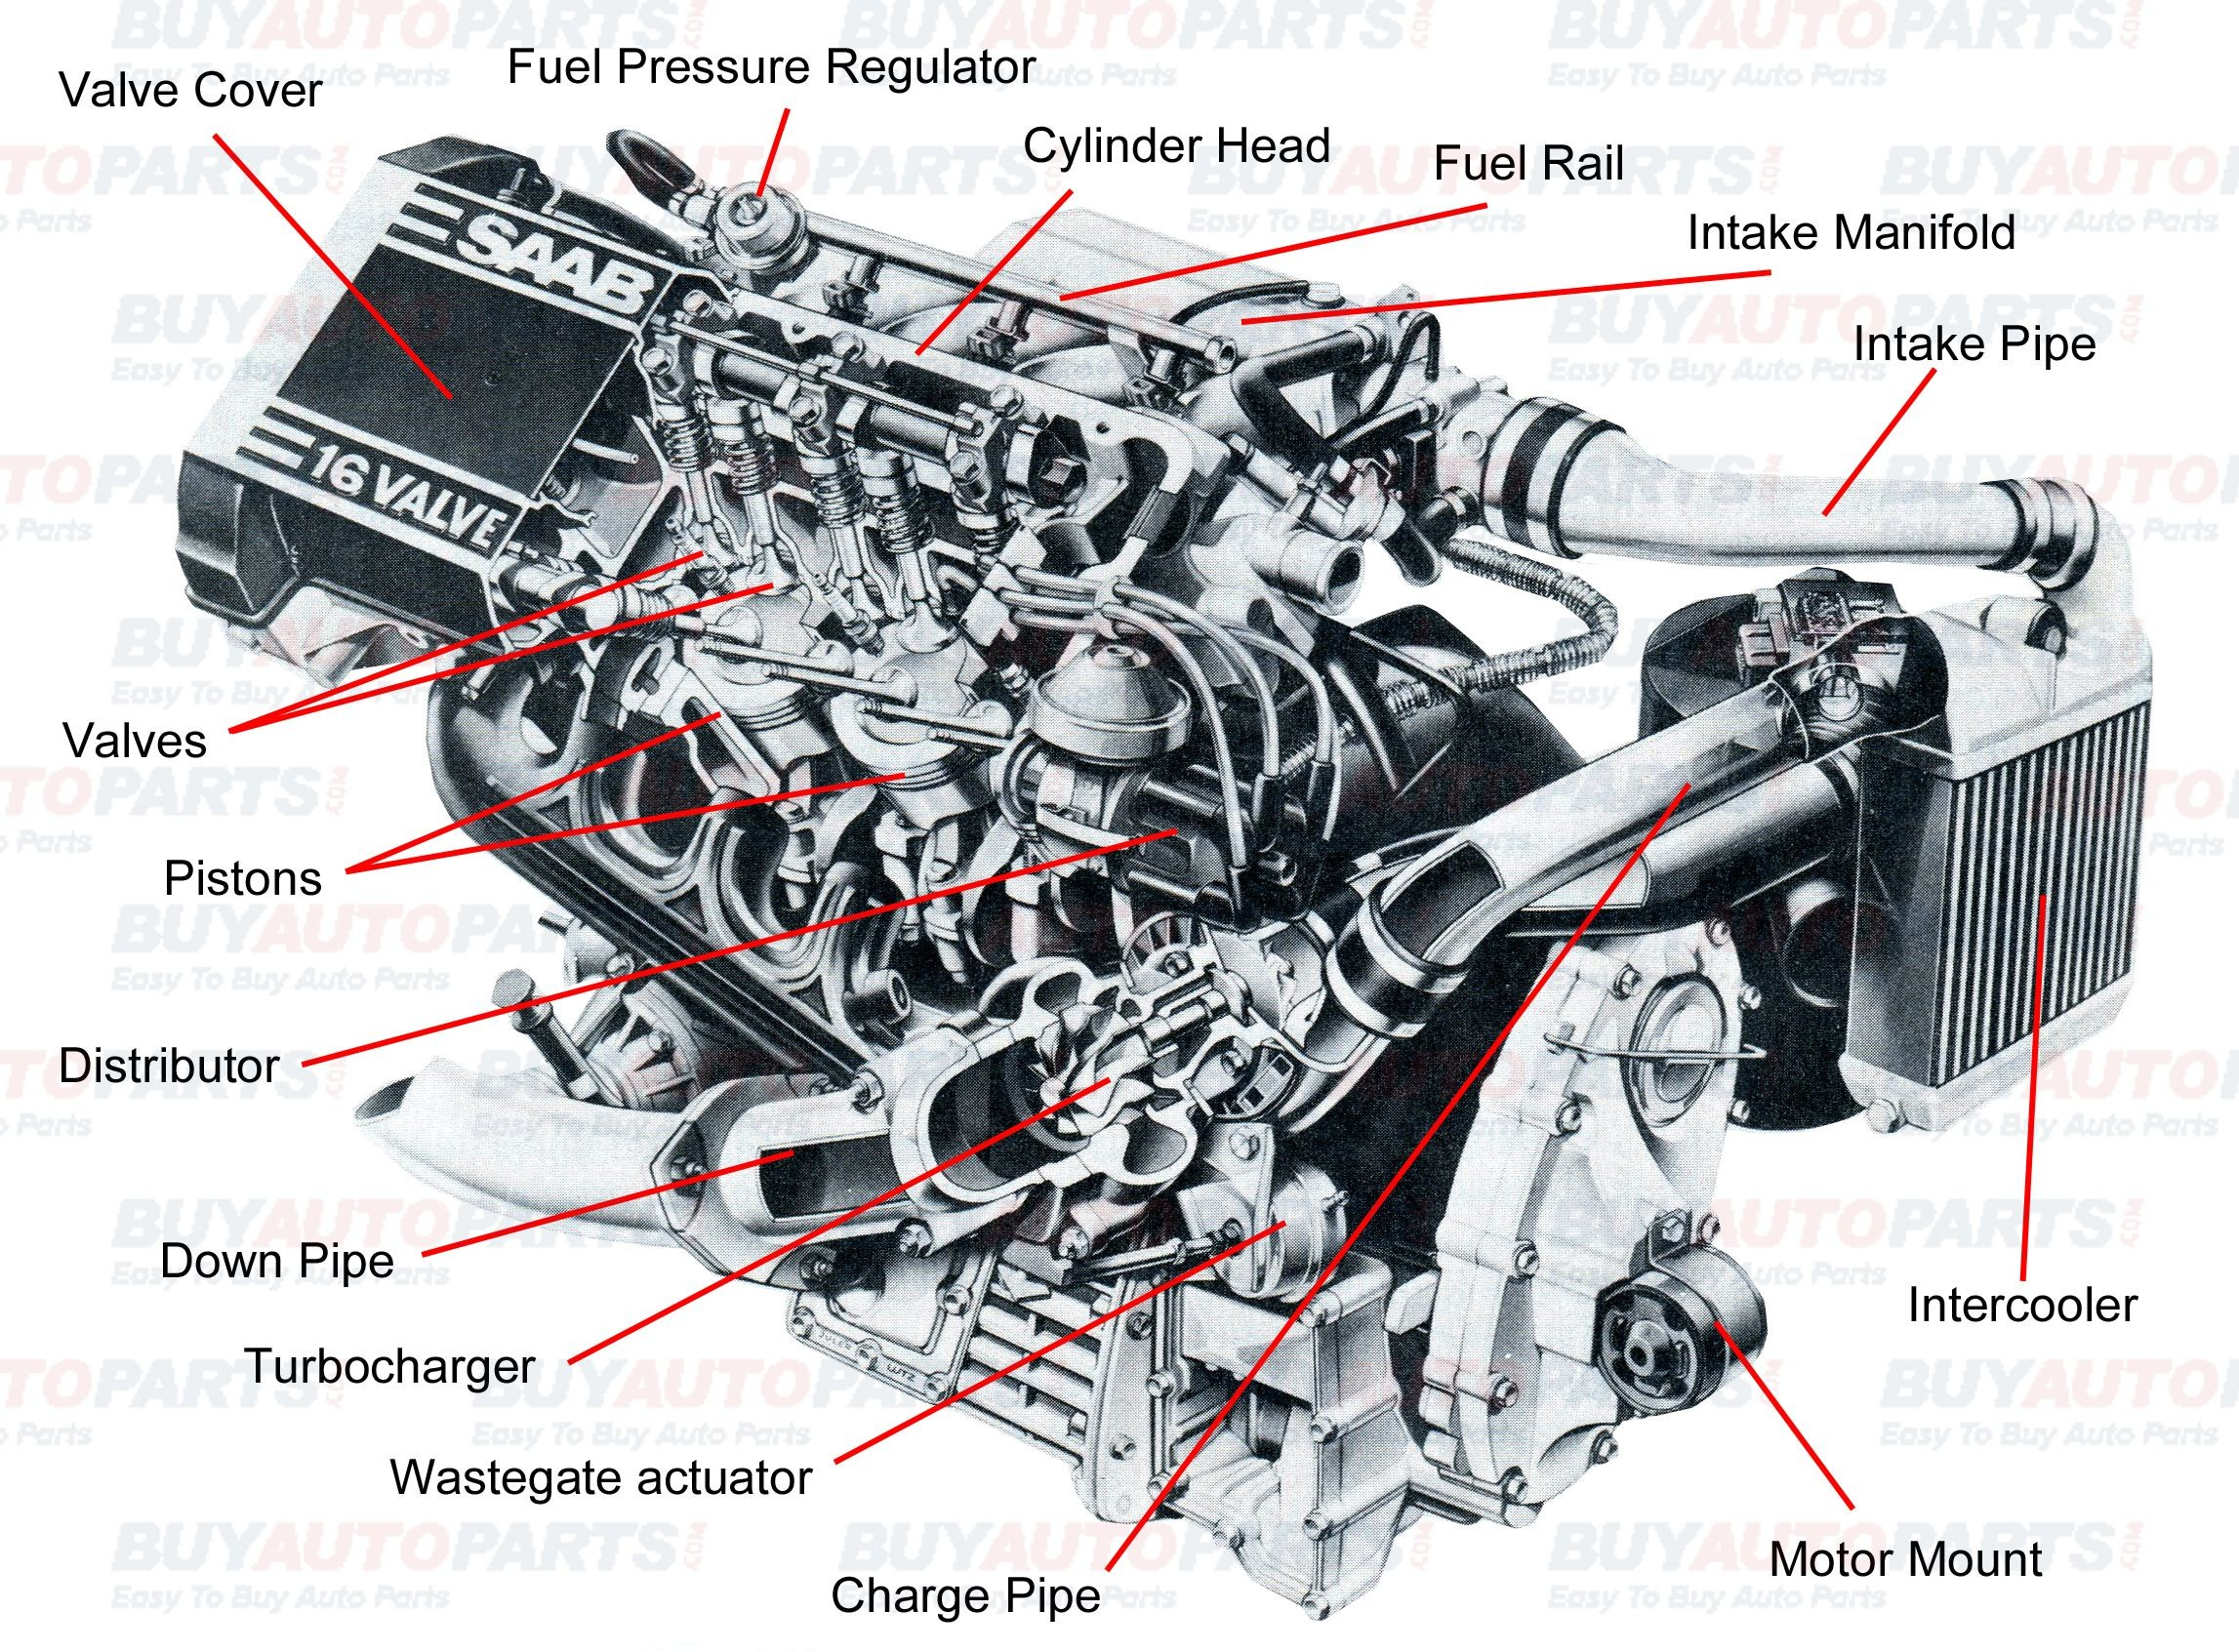 4 Cylinder Engine Diagram Pin by Jimmiejanet Testellamwfz On What Does An Engine with Turbo Of 4 Cylinder Engine Diagram